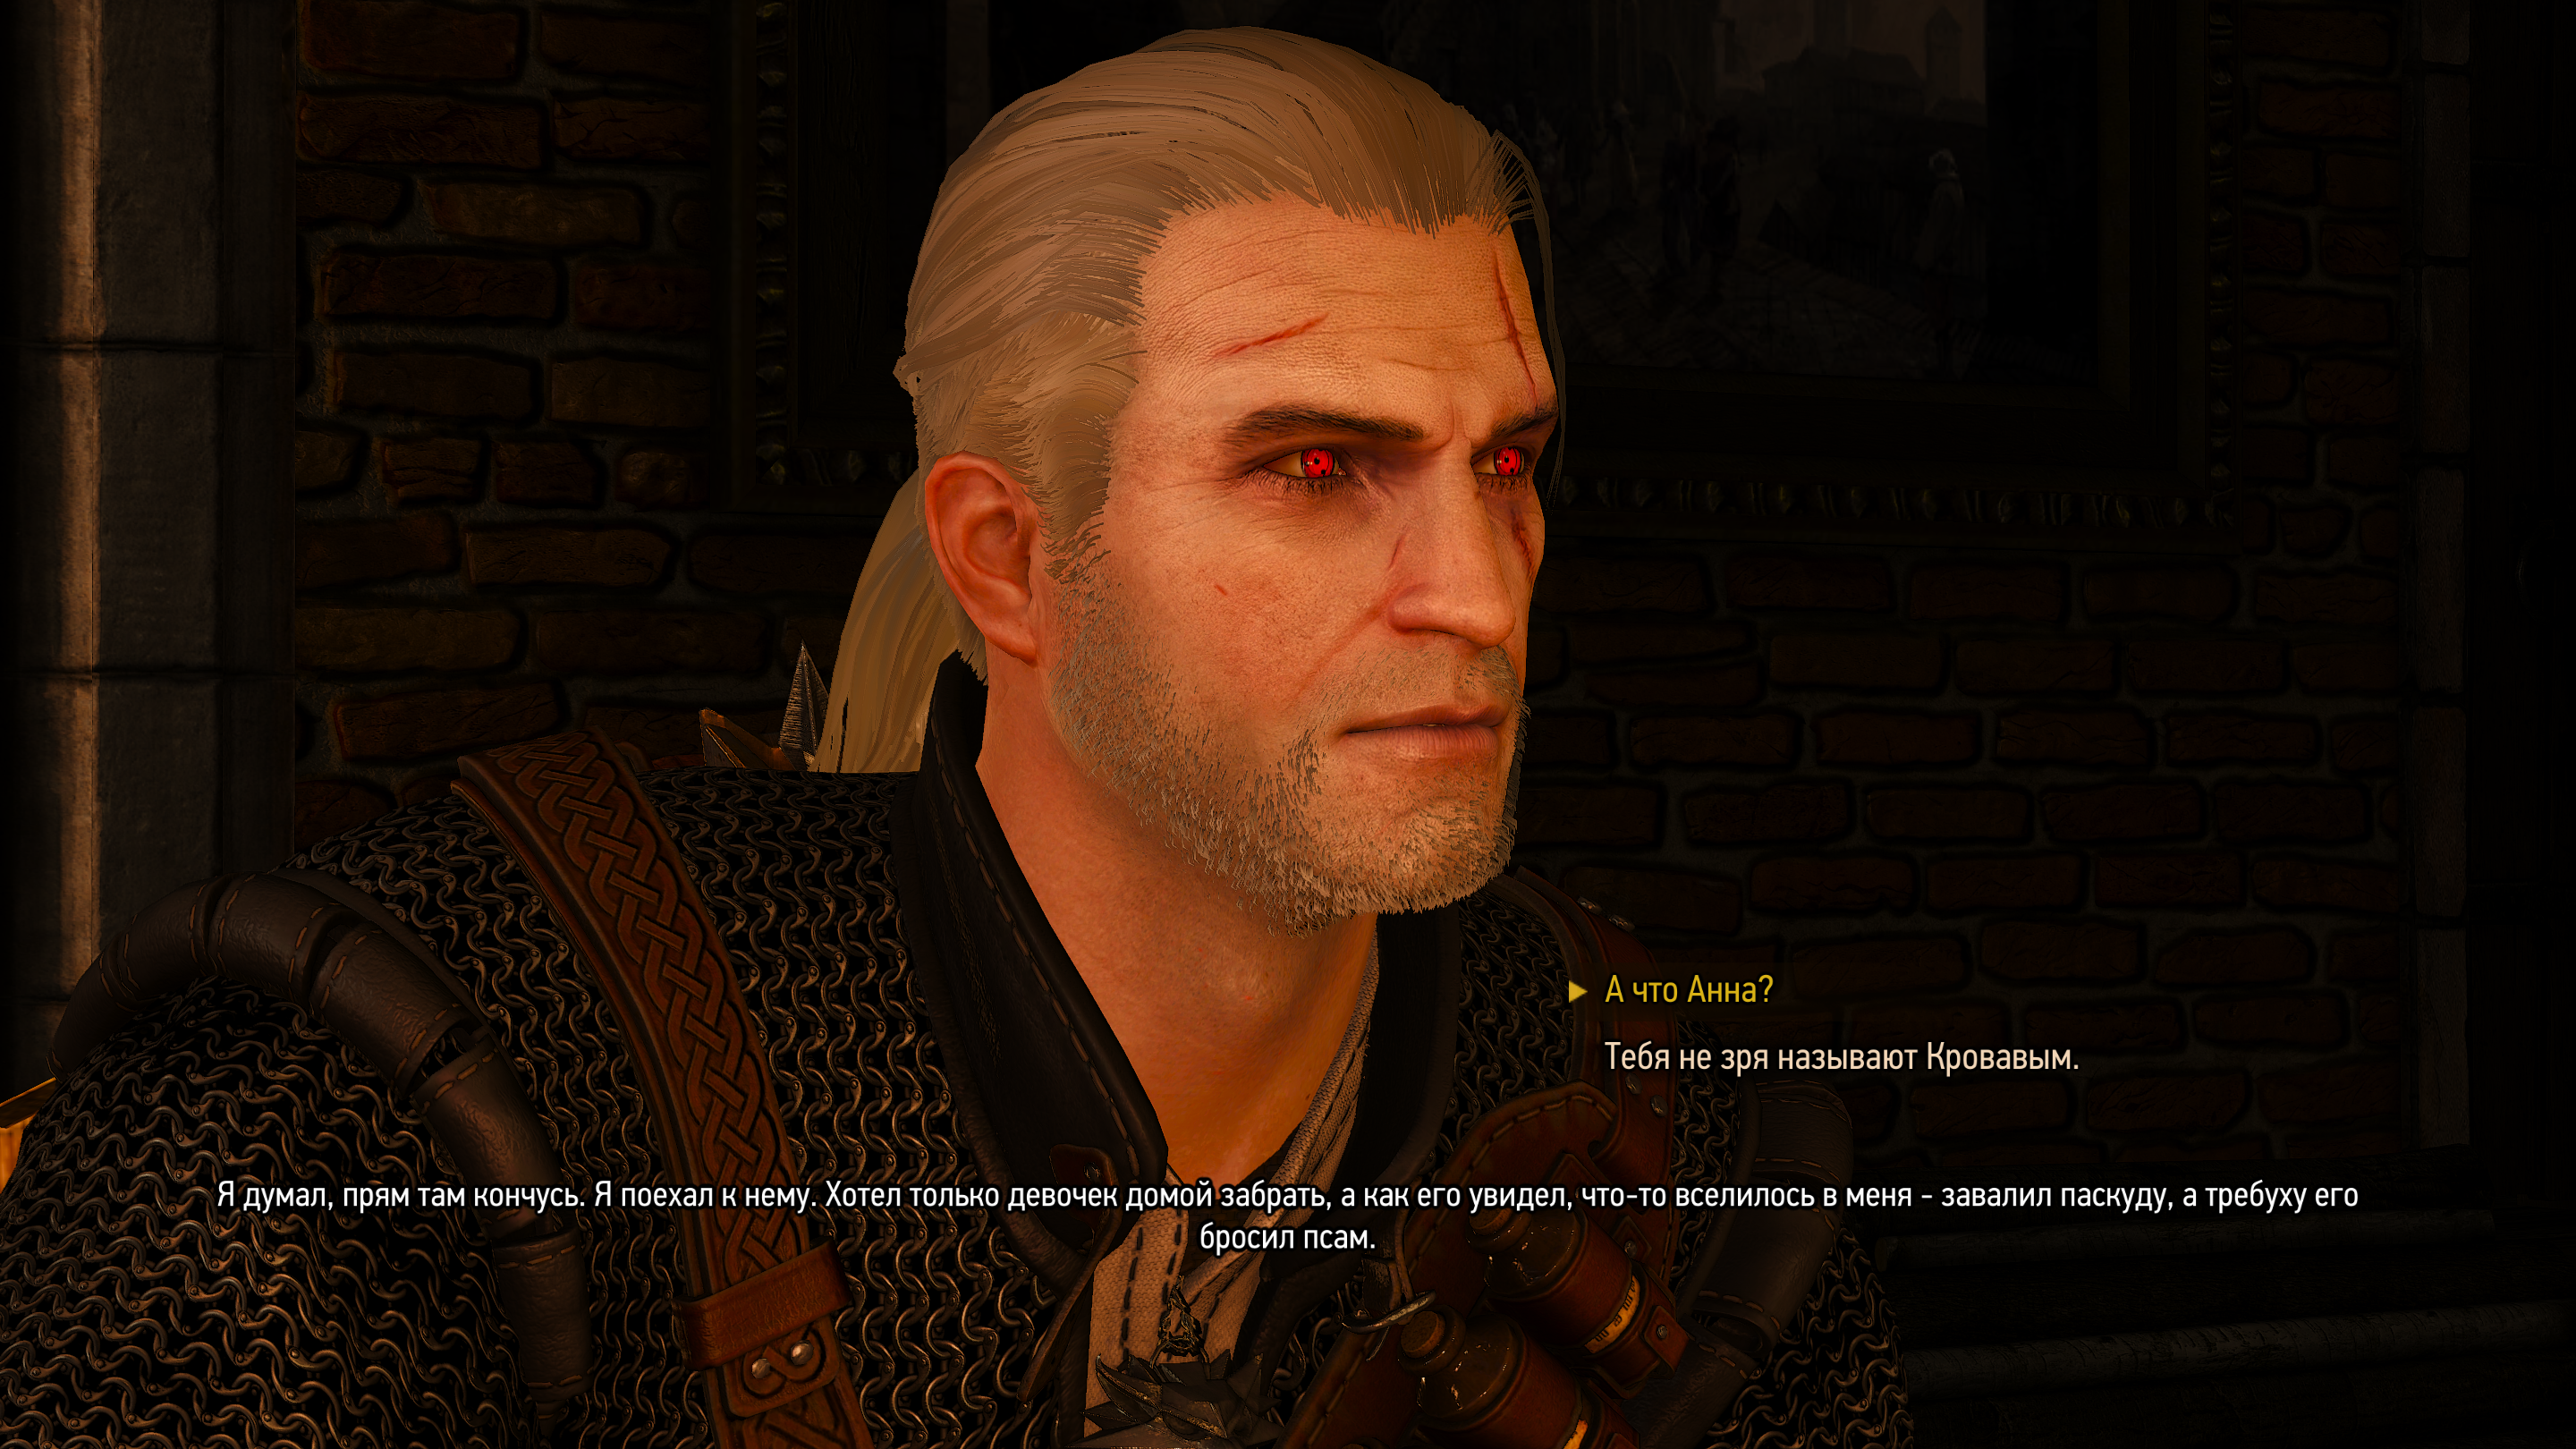 The Witcher 3 Screenshot 2019.06.16 - 22.34.09.71.png - Witcher 3: Wild Hunt, the